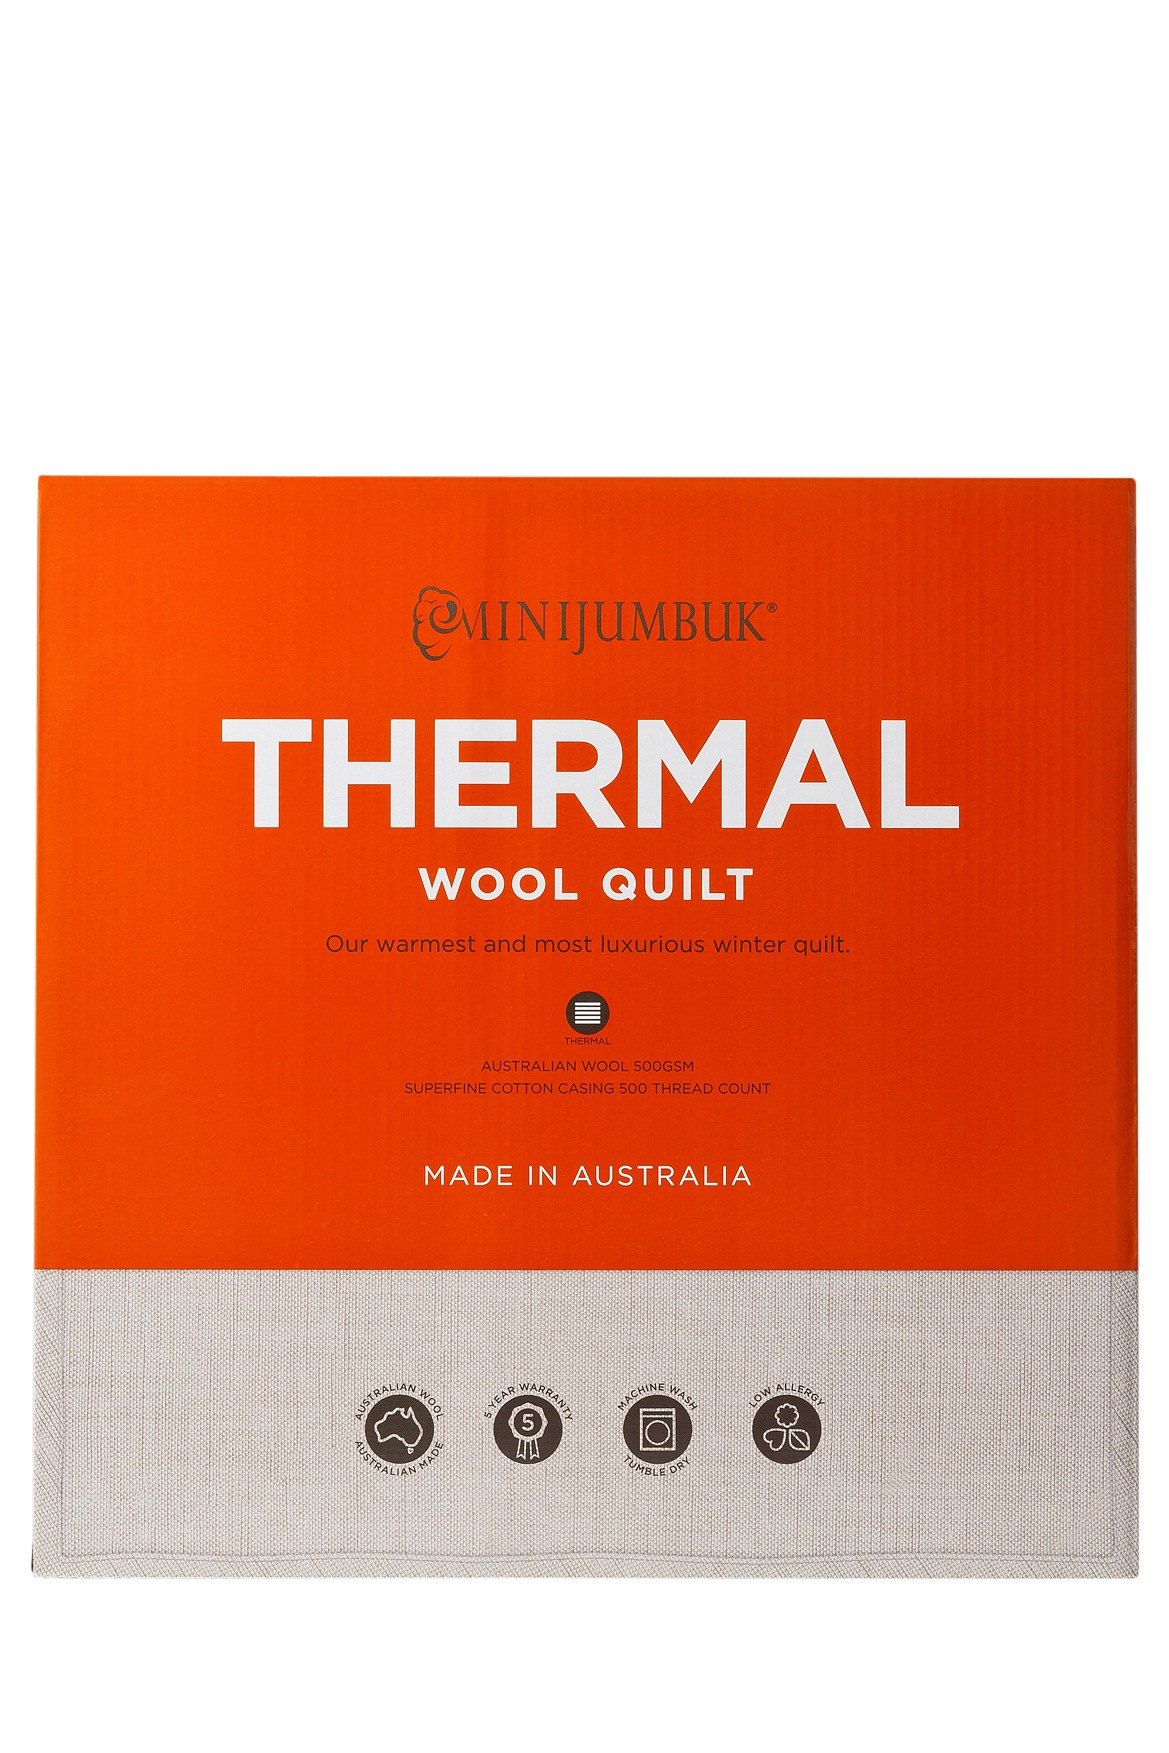 Mini Jumbuk | Thermal Wool Quilt | Myer Online : wool quilt review - Adamdwight.com